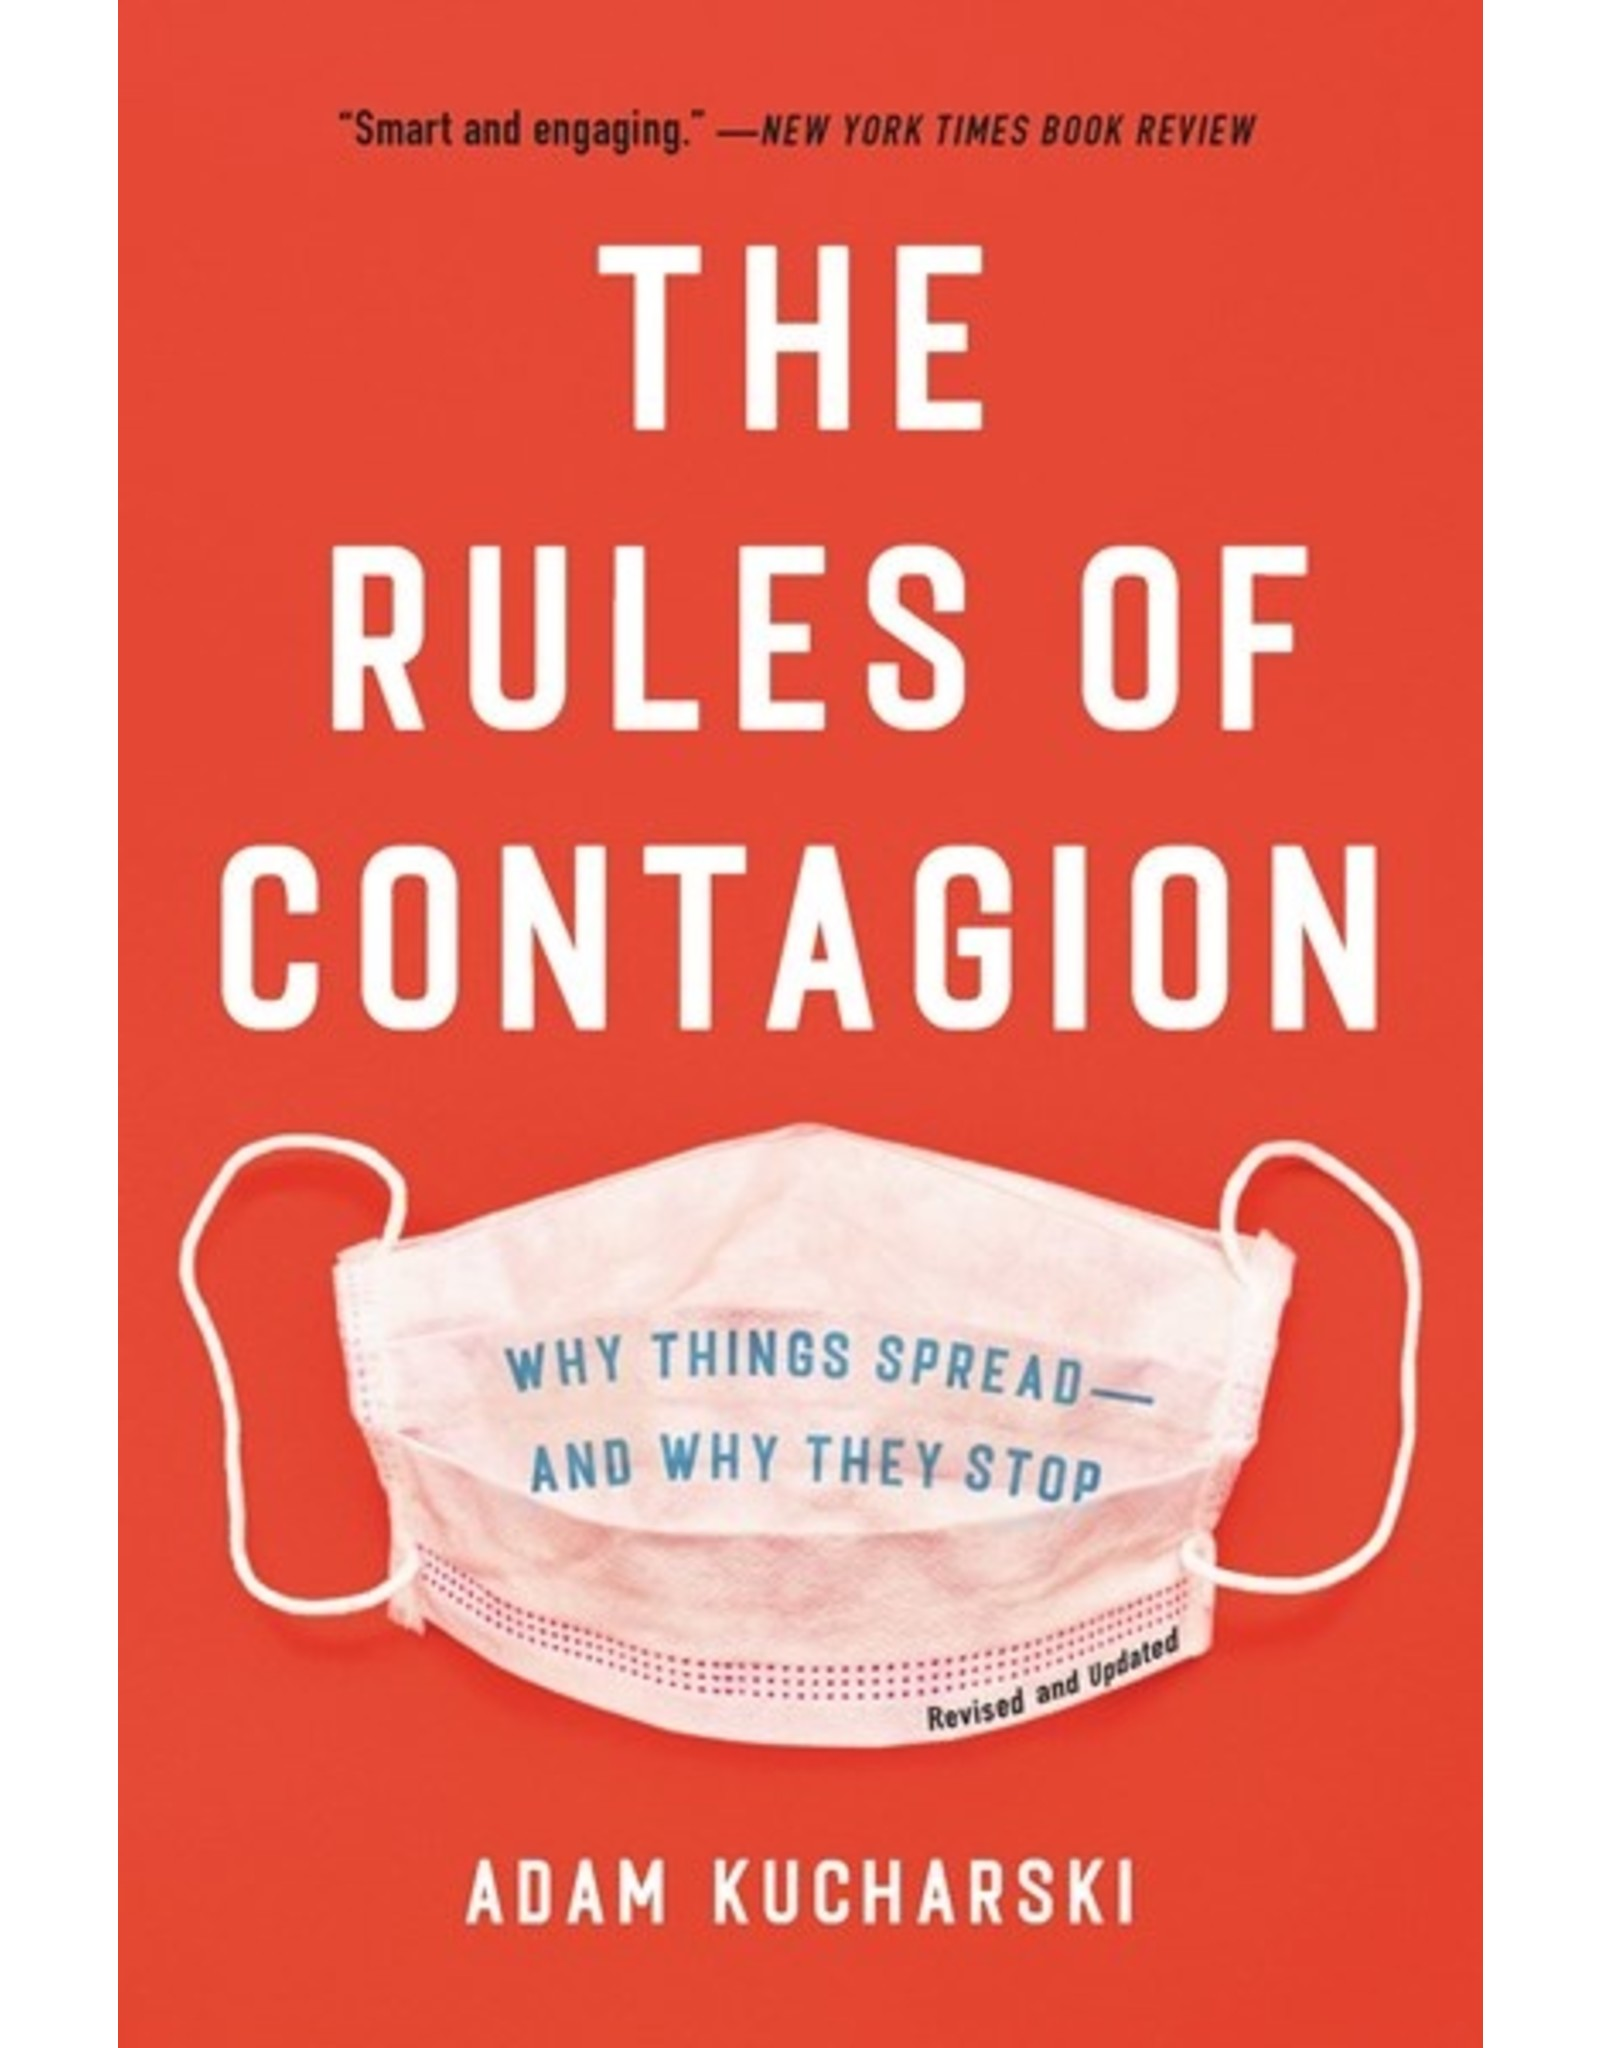 Books The Rules of Contagion : Why Things Spread and Why They Stop by Adam Kucharski